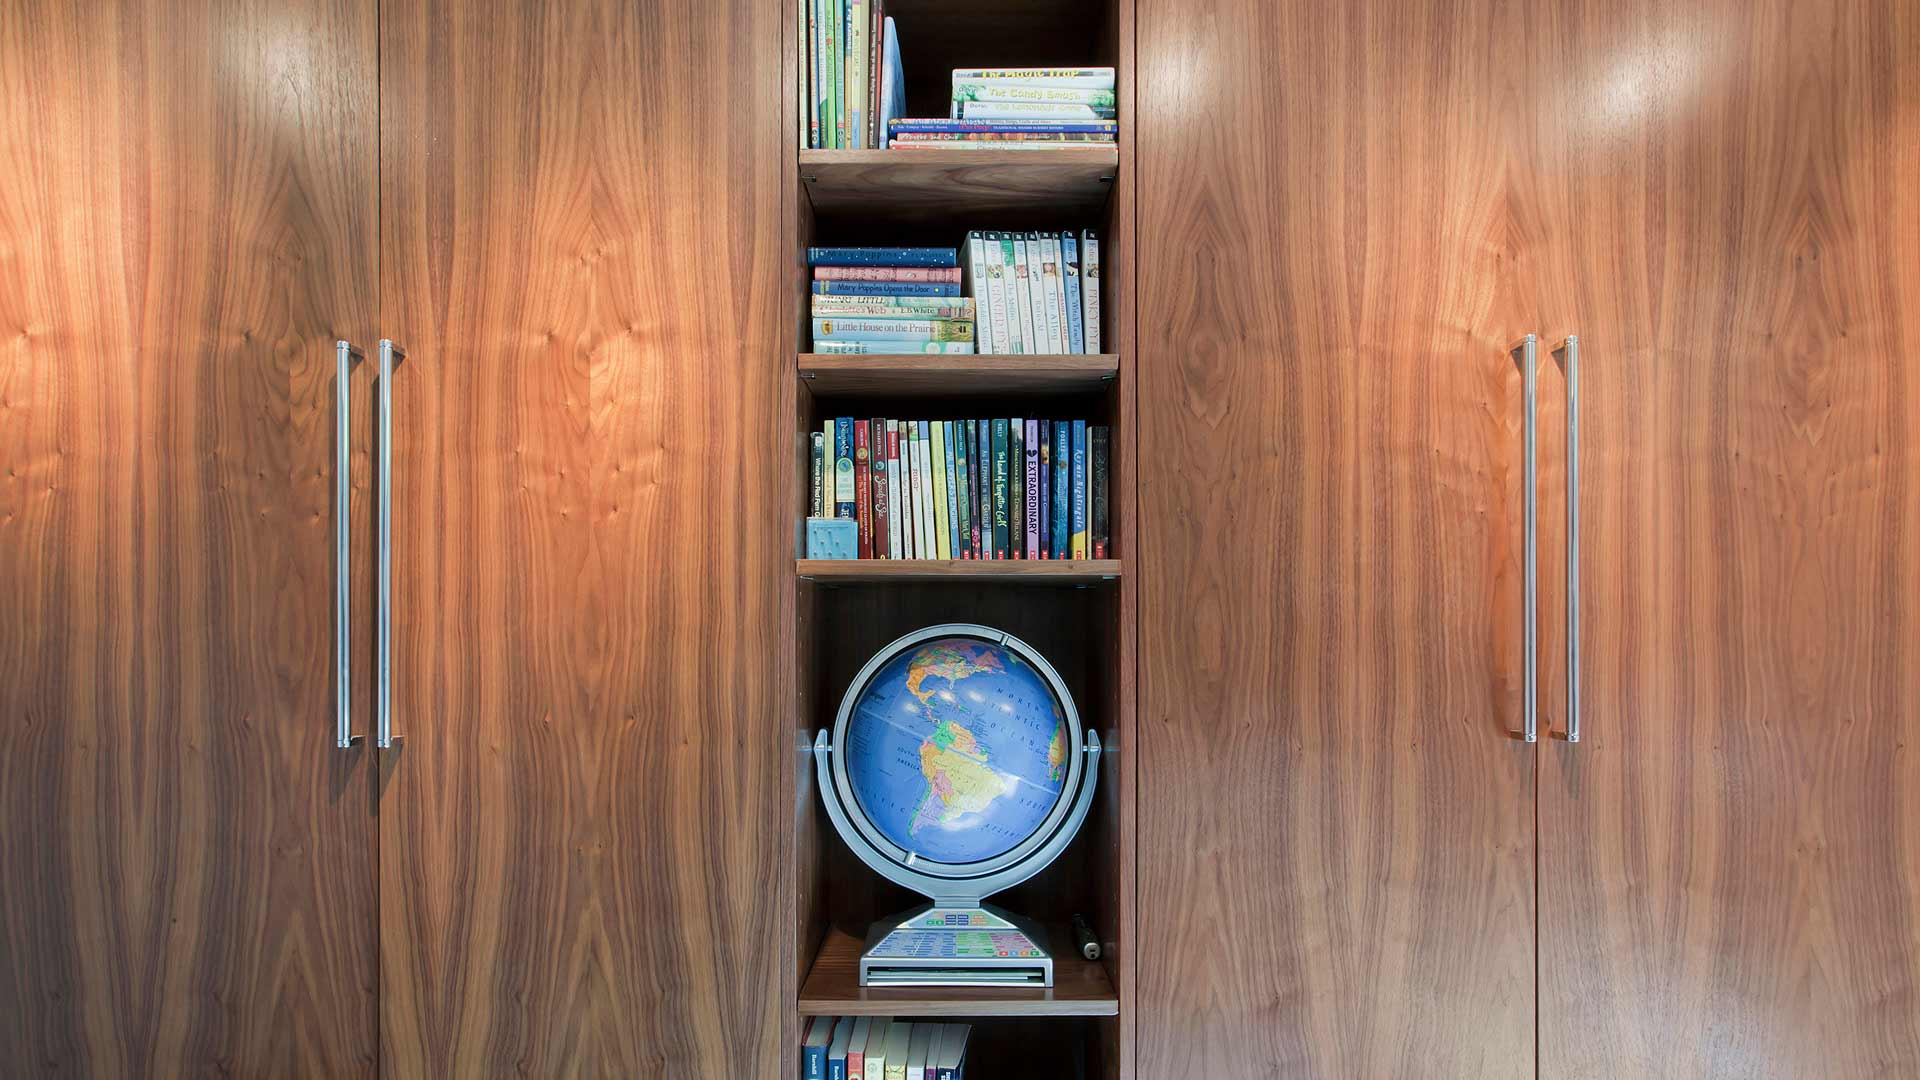 Custom Walnut Cabinetry Bedroom, Earth Globe, Bookshelves - Midcentury Modern Renovation - 81st Street - Indianapolis, Christopher Short, Architect, HAUS Architecture